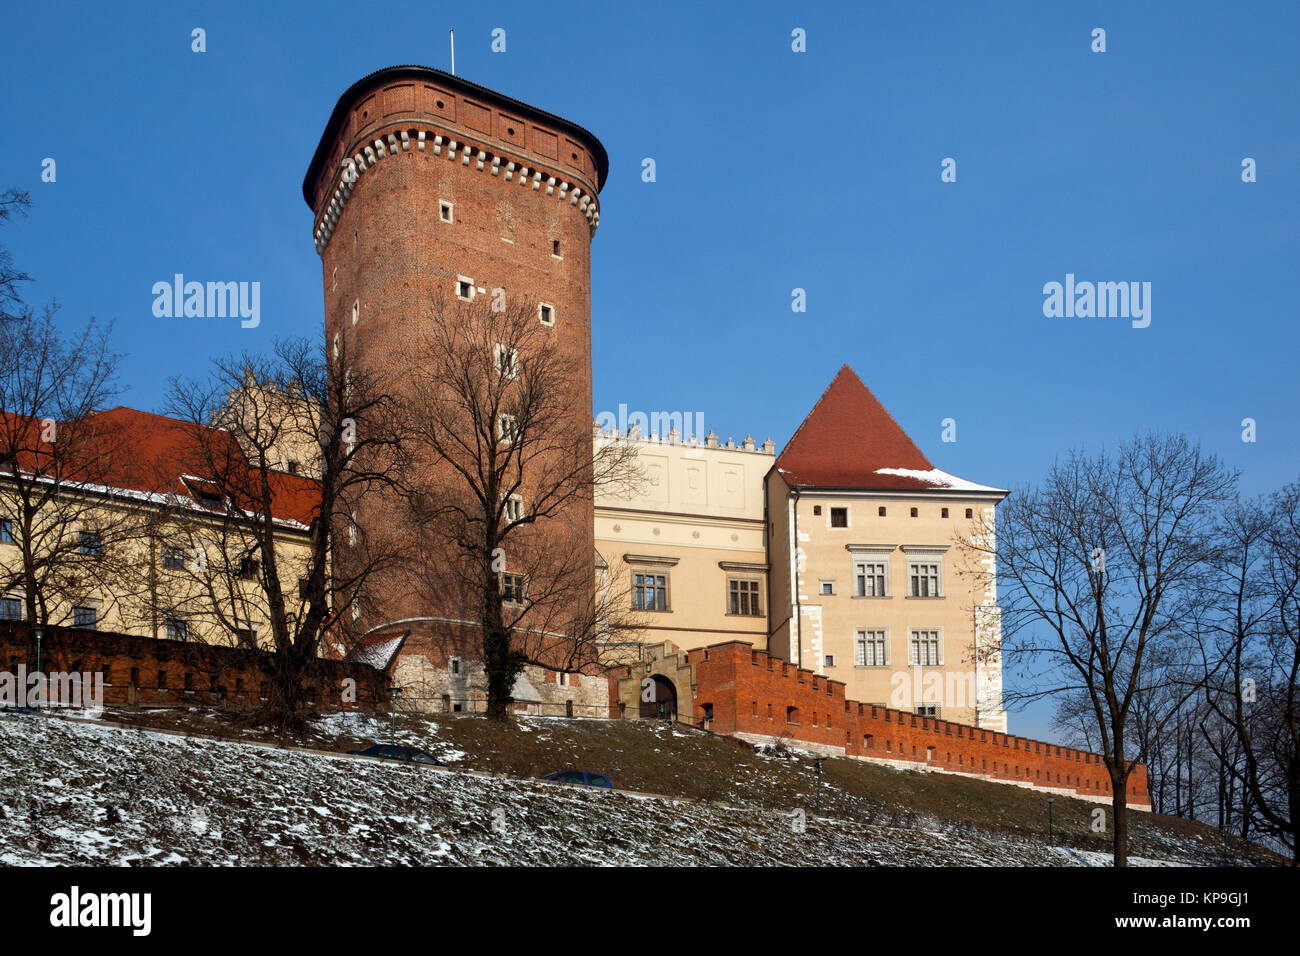 The Senatorska Tower at the Royal Castle on Wawel Hill in the city of Cracow in Poland. - Stock Image